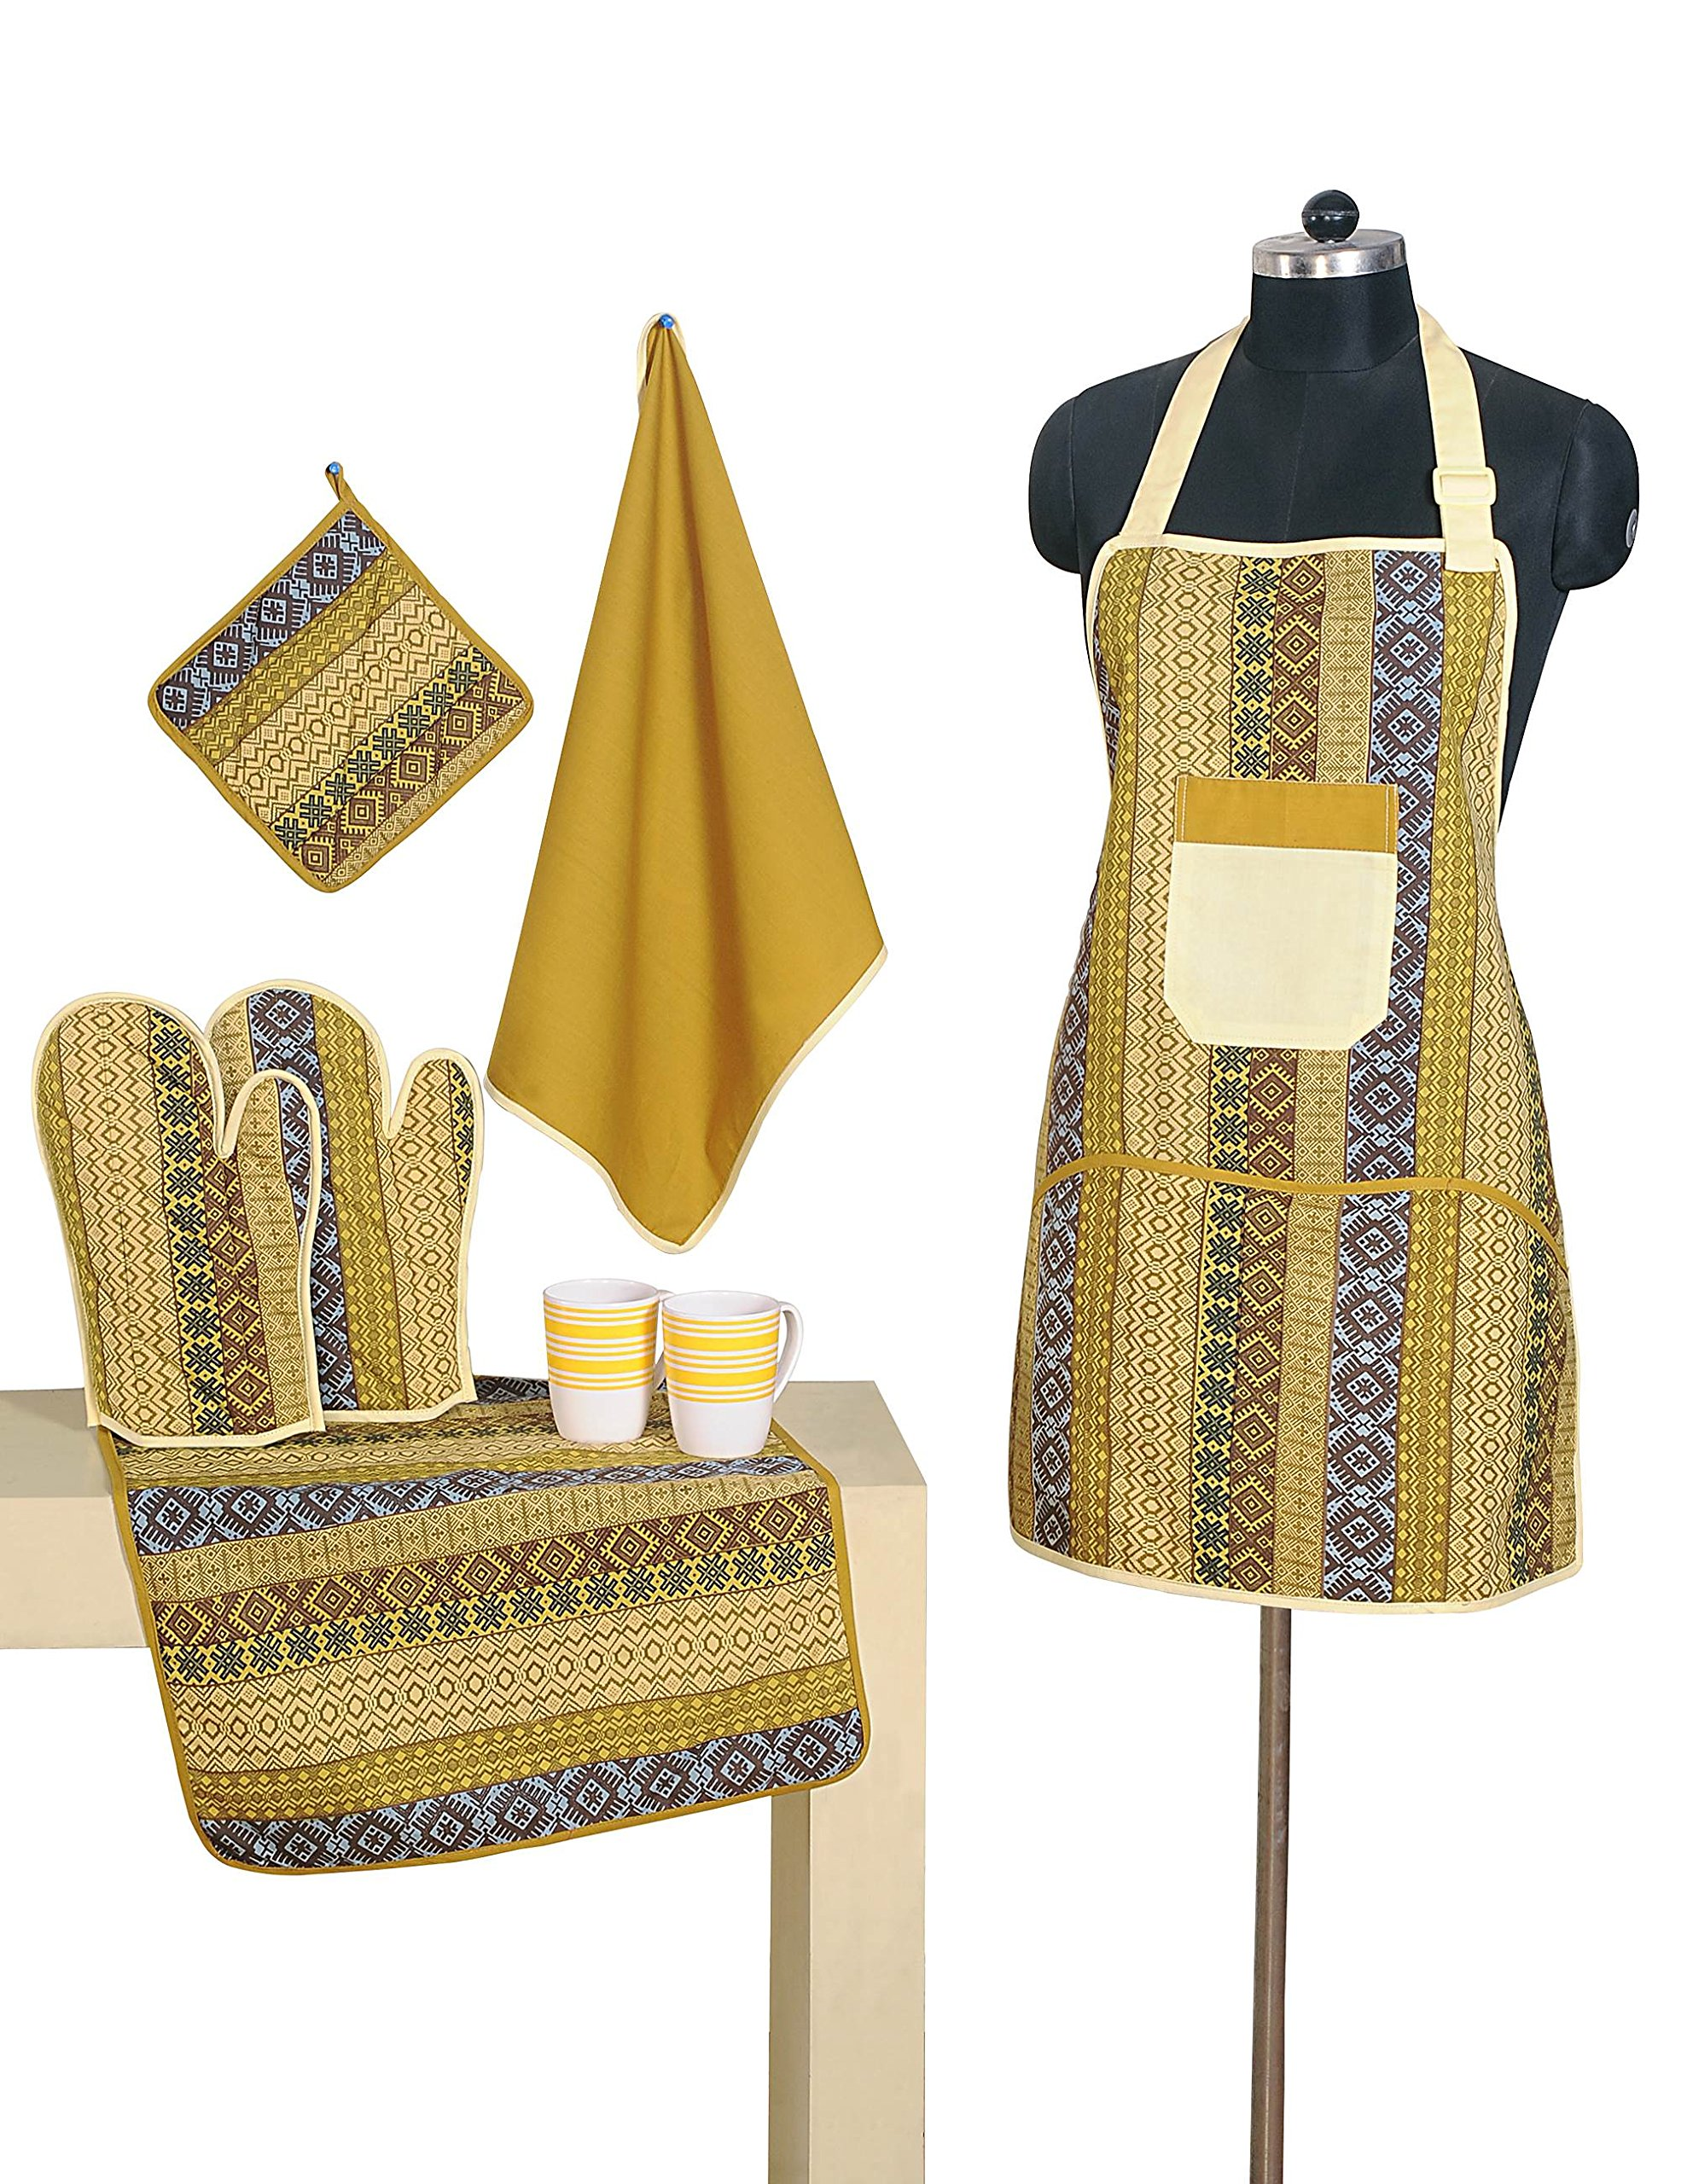 Patterned Cotton Chef's Apron Set with Pot Holder, Oven Mitts & Napkins - Perfect Home Kitchen Gift or Bridal Shower Gift by Swayam